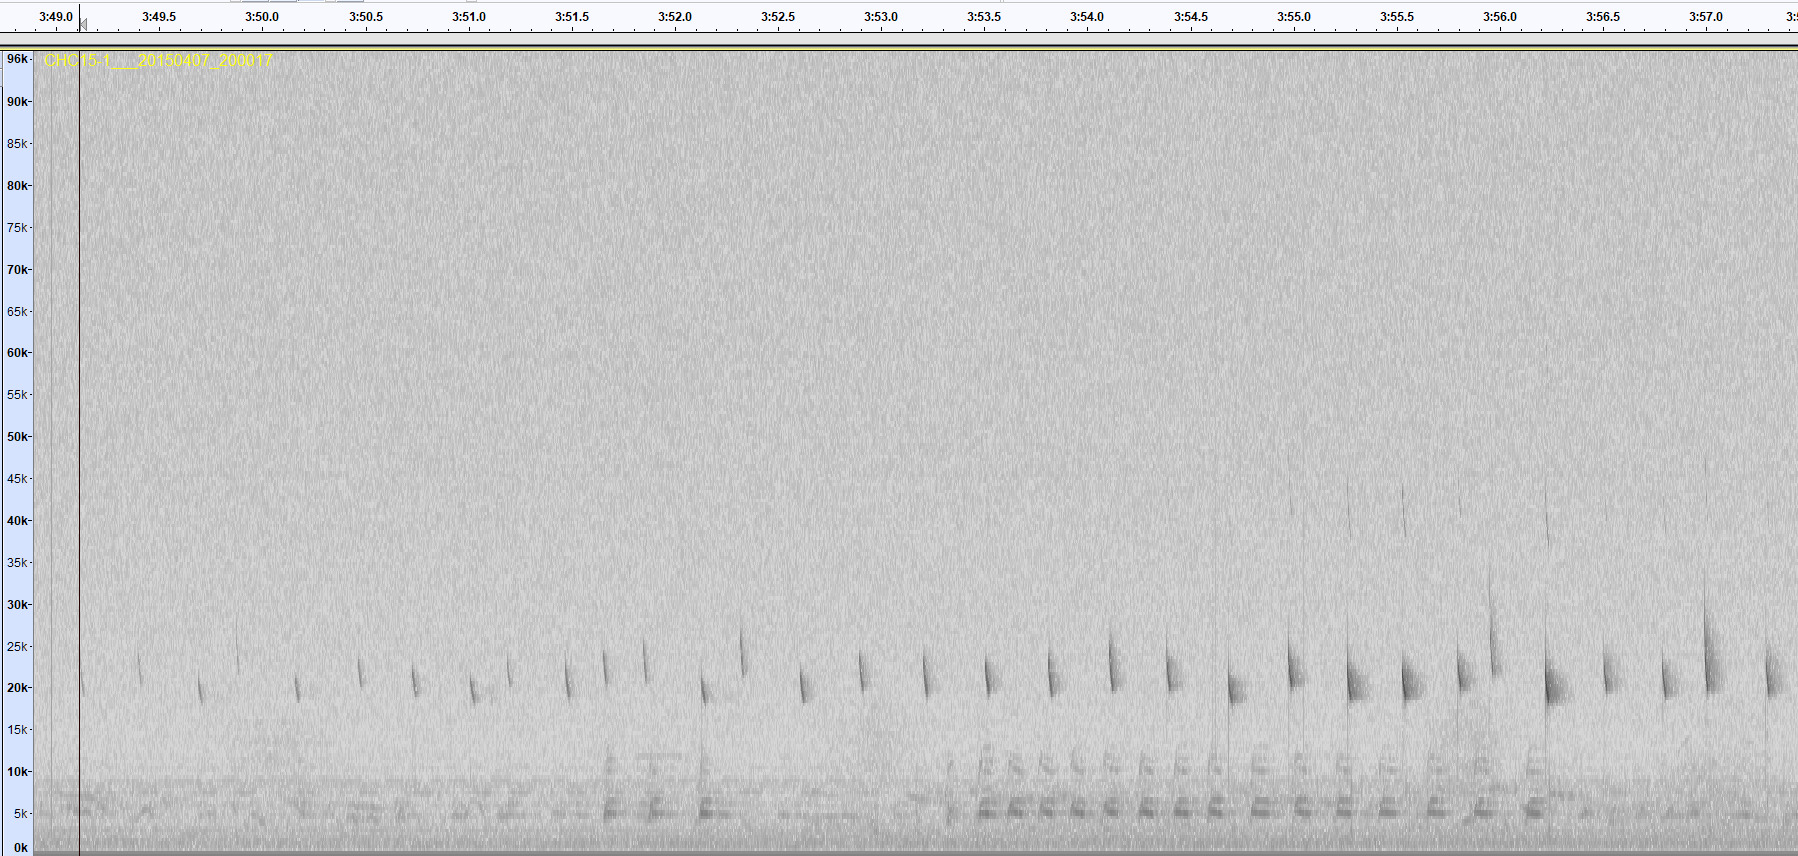 Bat Calls And Their Variations